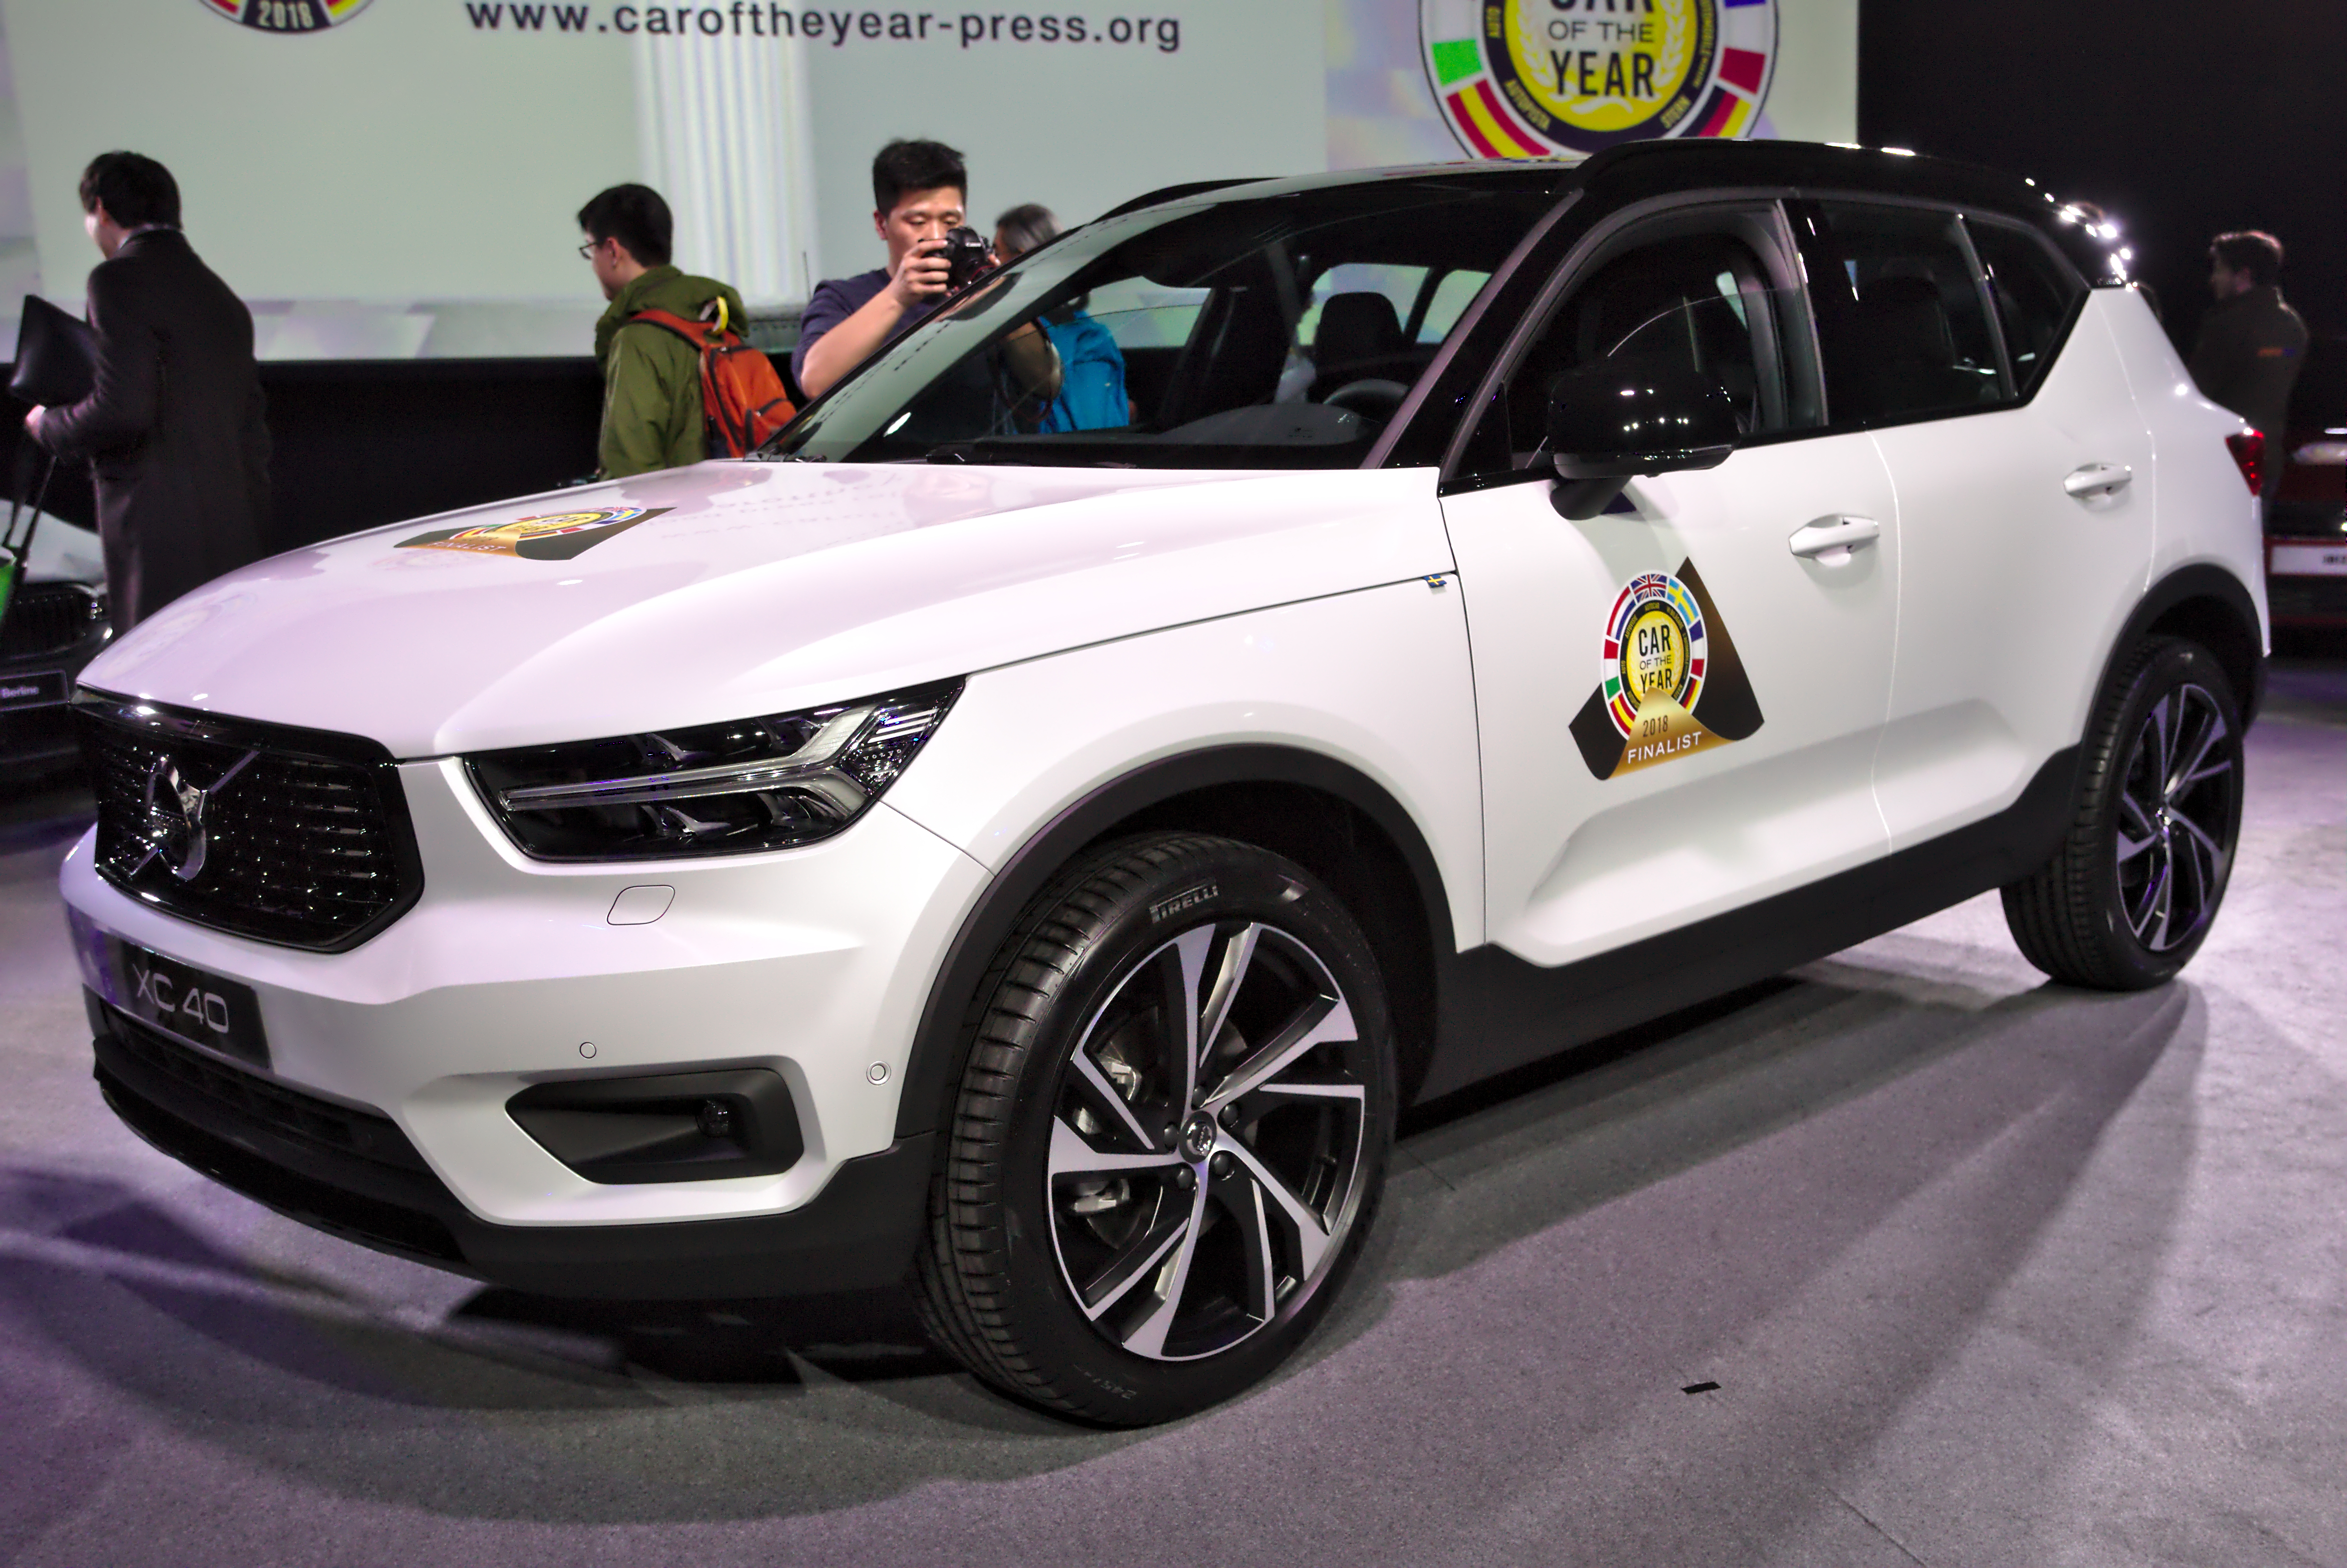 File Volvo Xc40 Car Of The Year Genf 2018 Jpg Wikimedia Commons